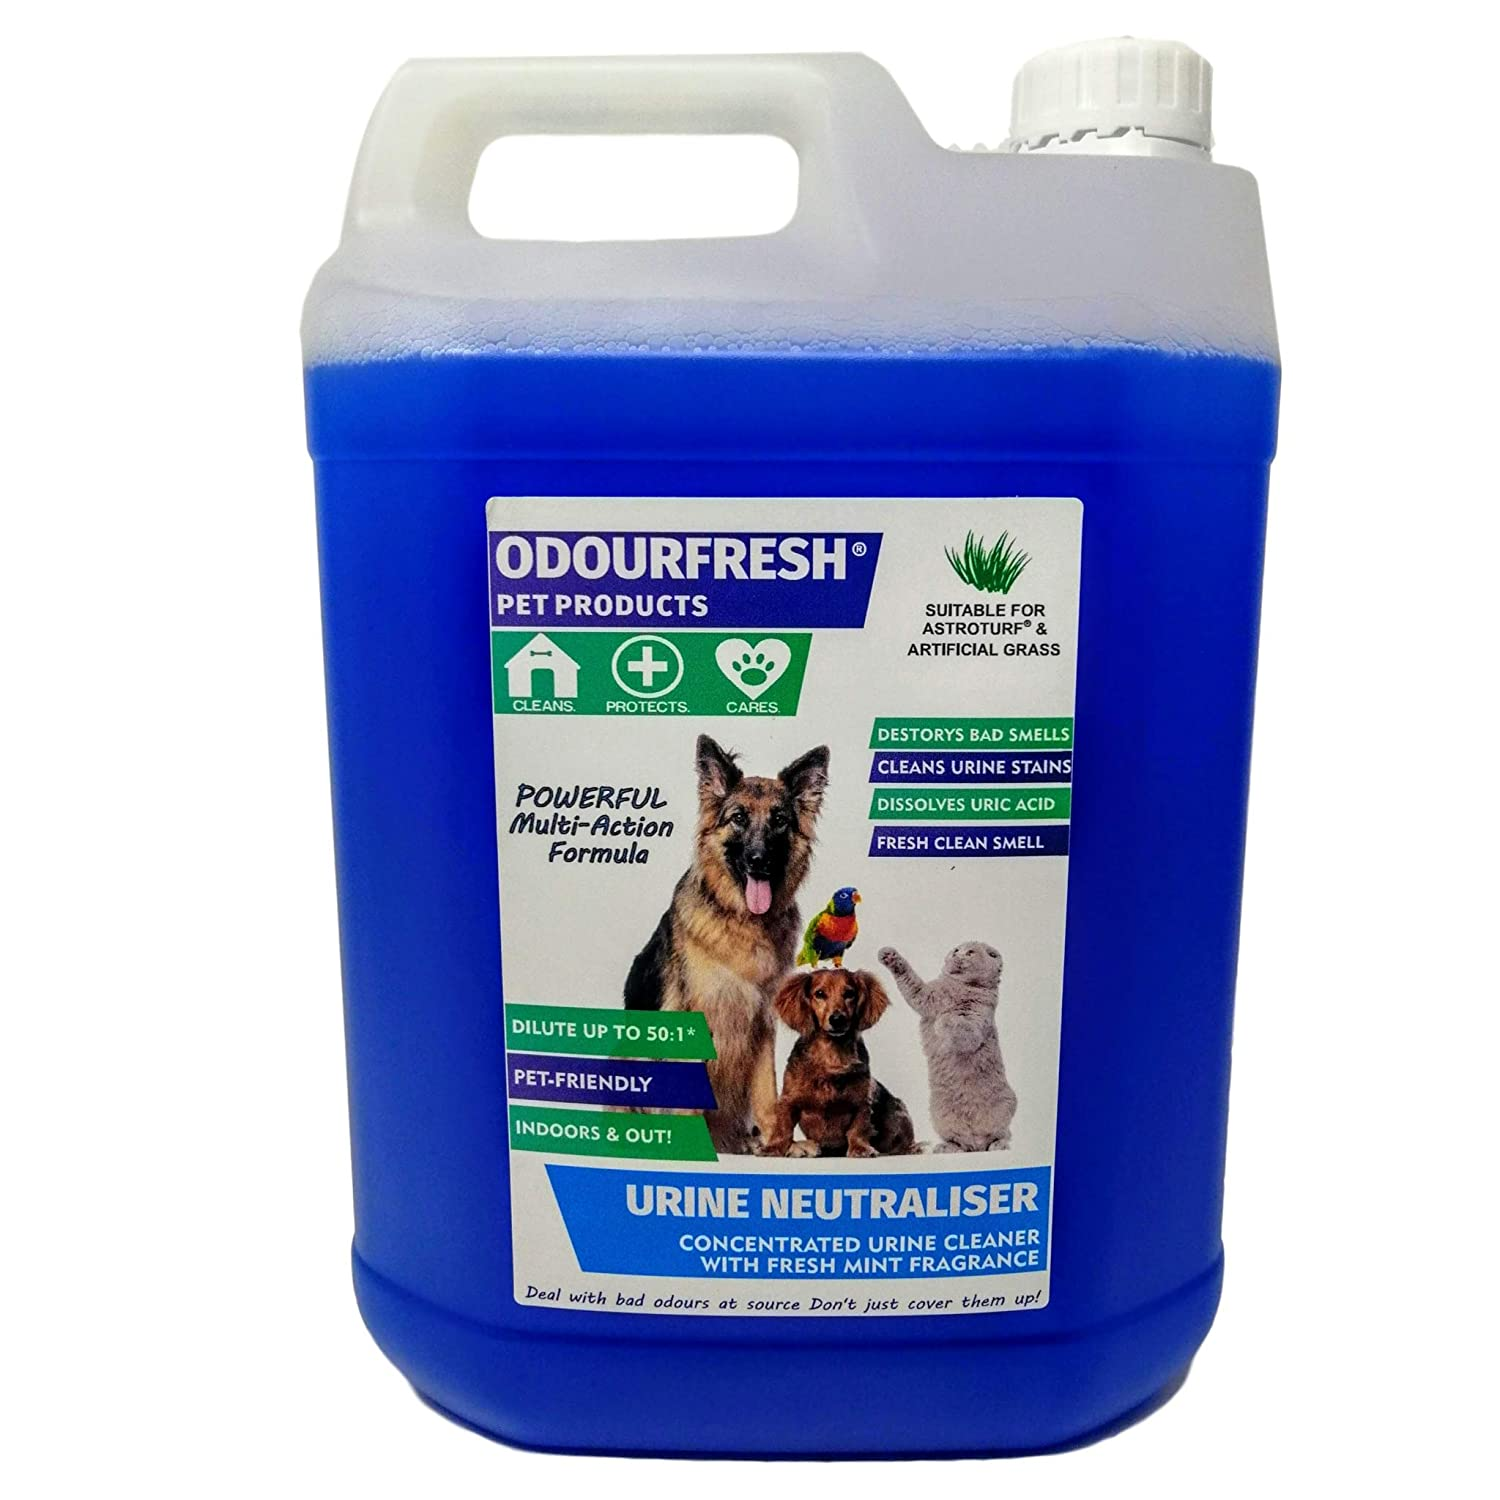 5L Odourfresh Urine Neutraliser Concentrate  Cleans Urine and Faeces  Destroys Bad Smells Caused by Cats and Dogs  For Carpets, Patios, Floors and Furniture (Spearmint, 4x5L)